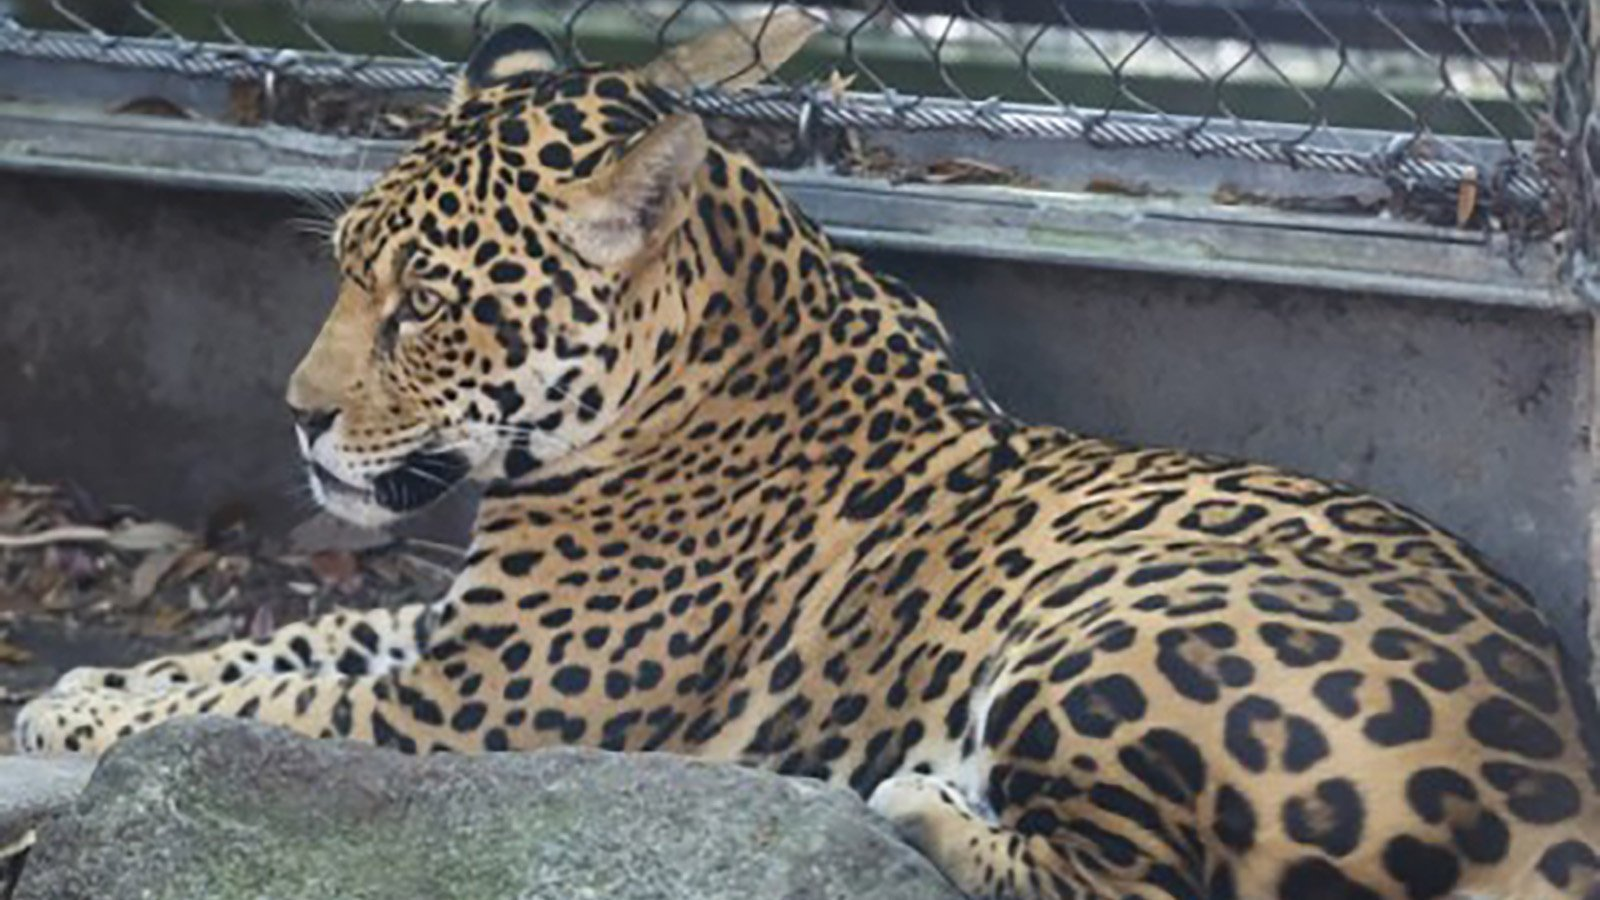 A jaguar was sedated and returned to its area after escaping at Audubon Zoo in New Orleans on July 14, 2018, officials said. (Credit: Audubon Nature Institute via CNN)